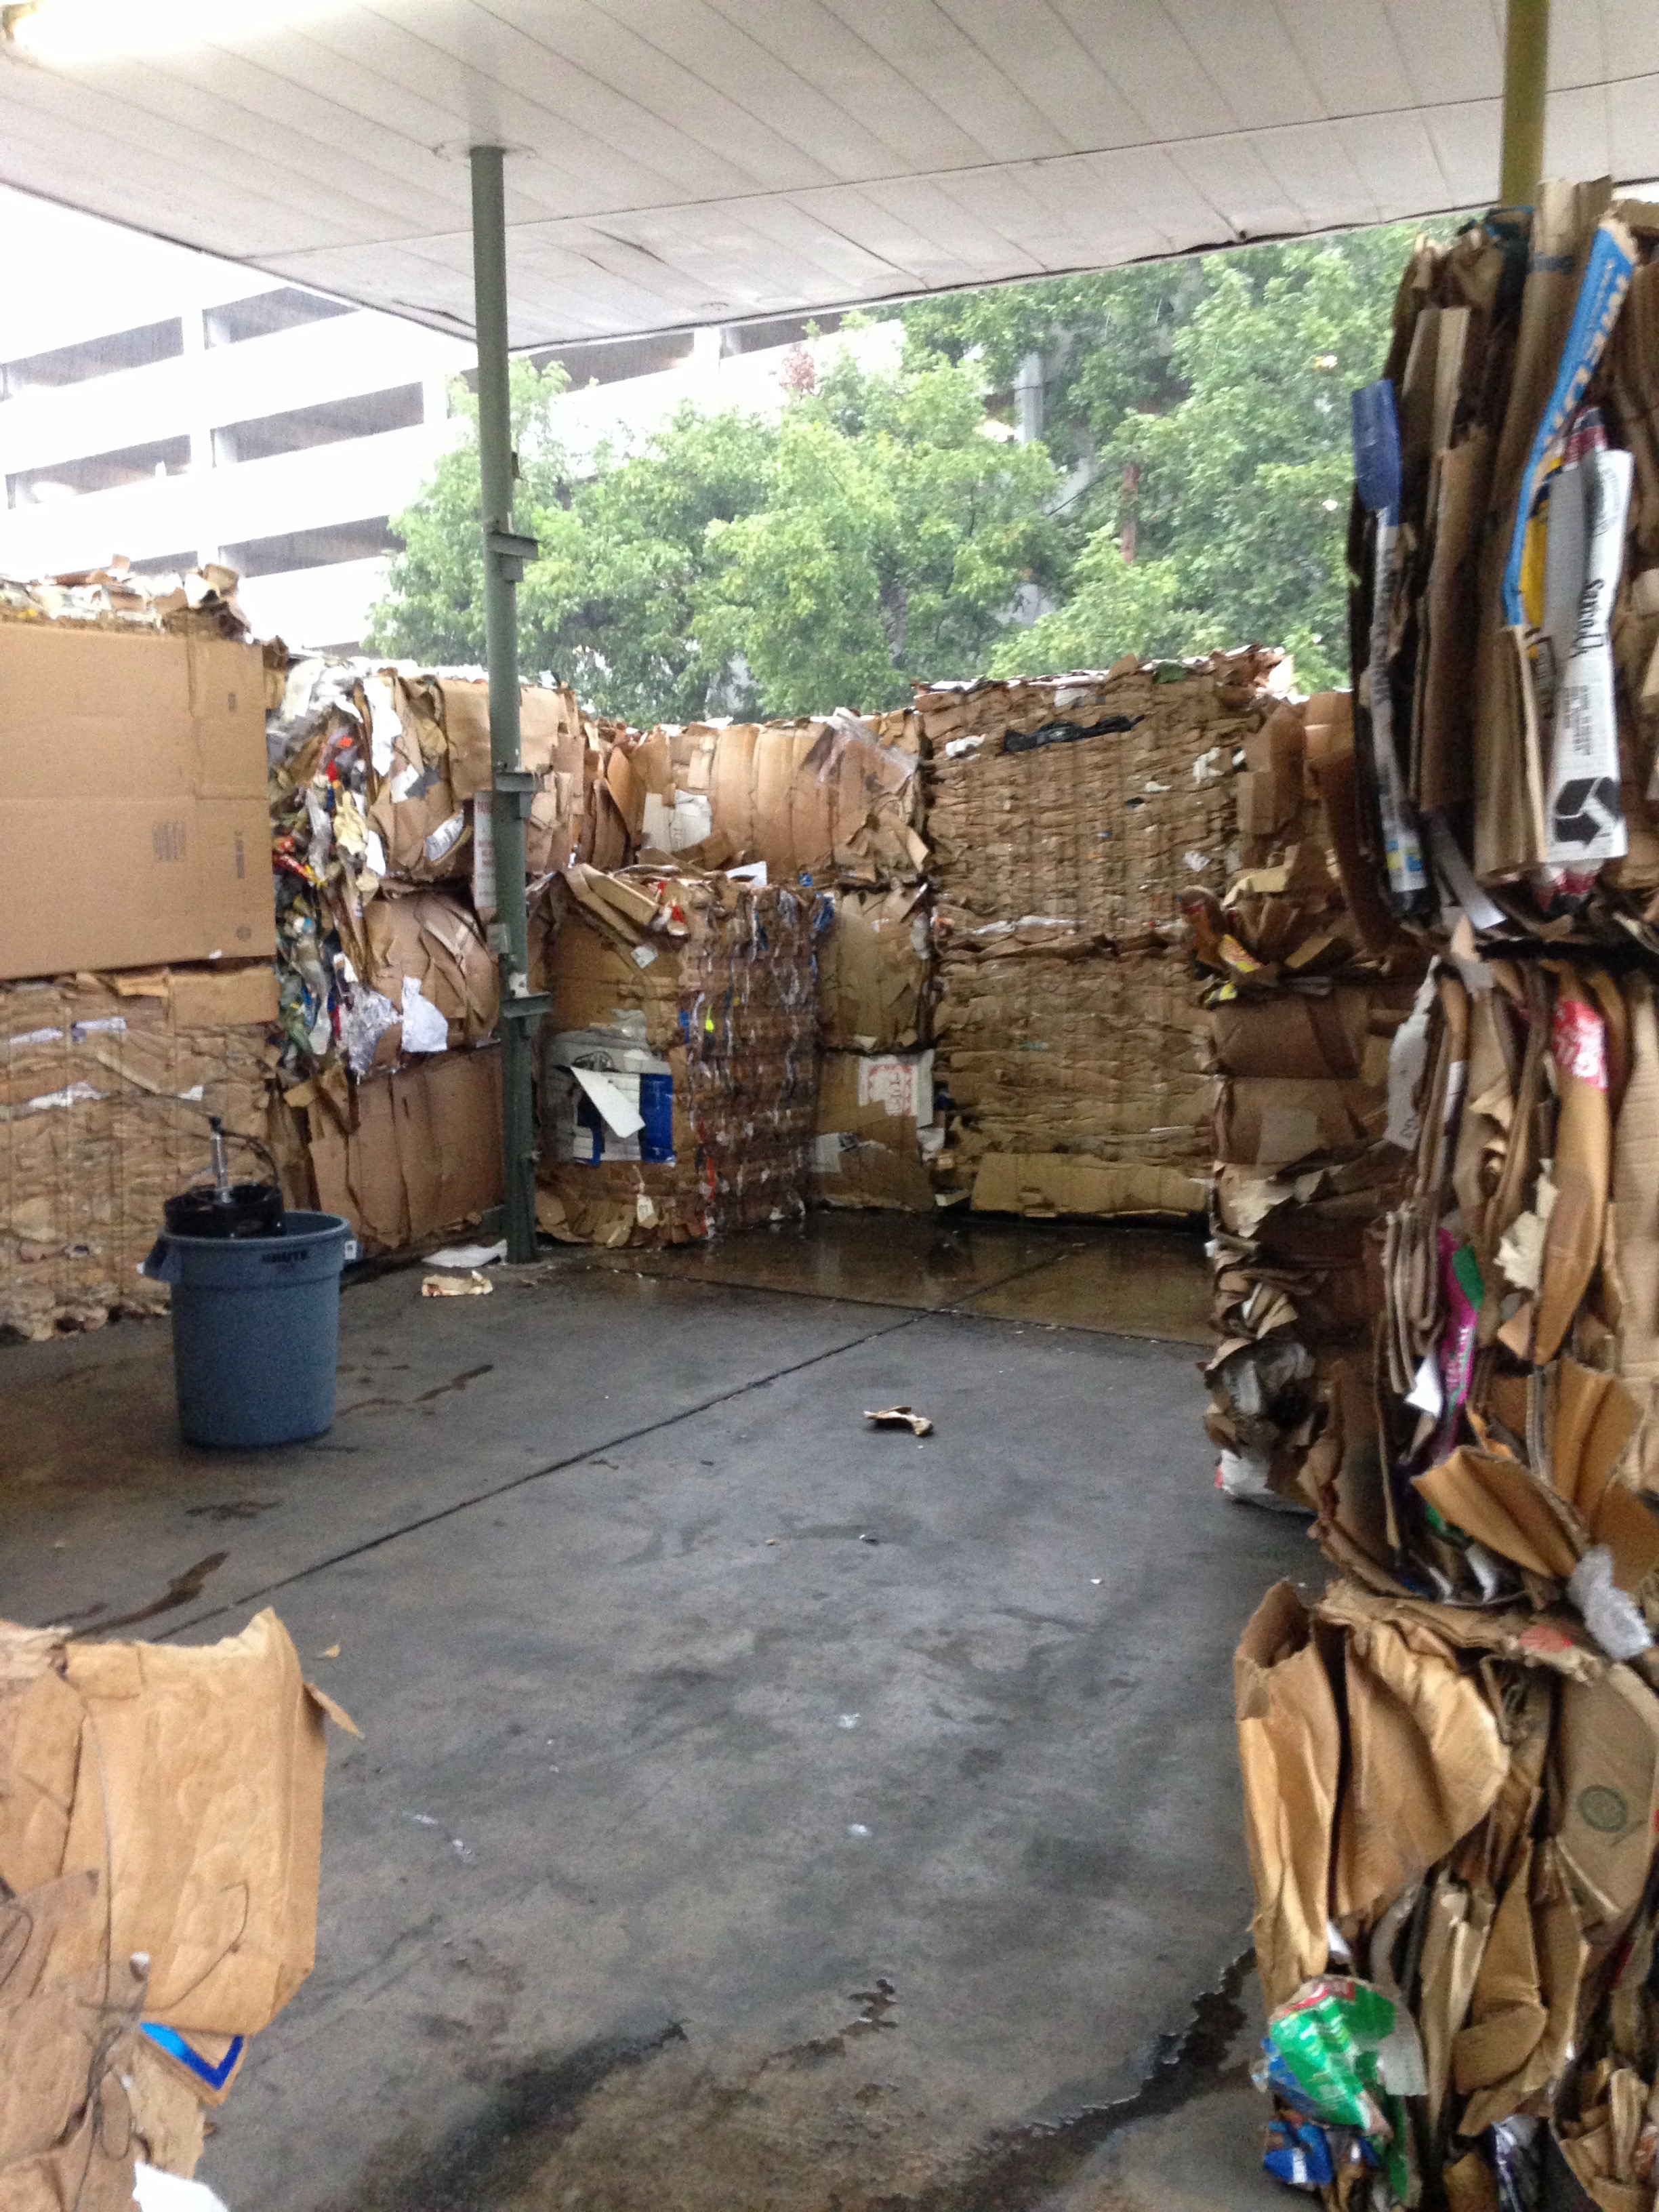 The exhibition space was constructed entirely out of 1200 lb bales of OCC (the recycling industry term for old corrugated cardboard/containers) underneath the awning of the recycling center.